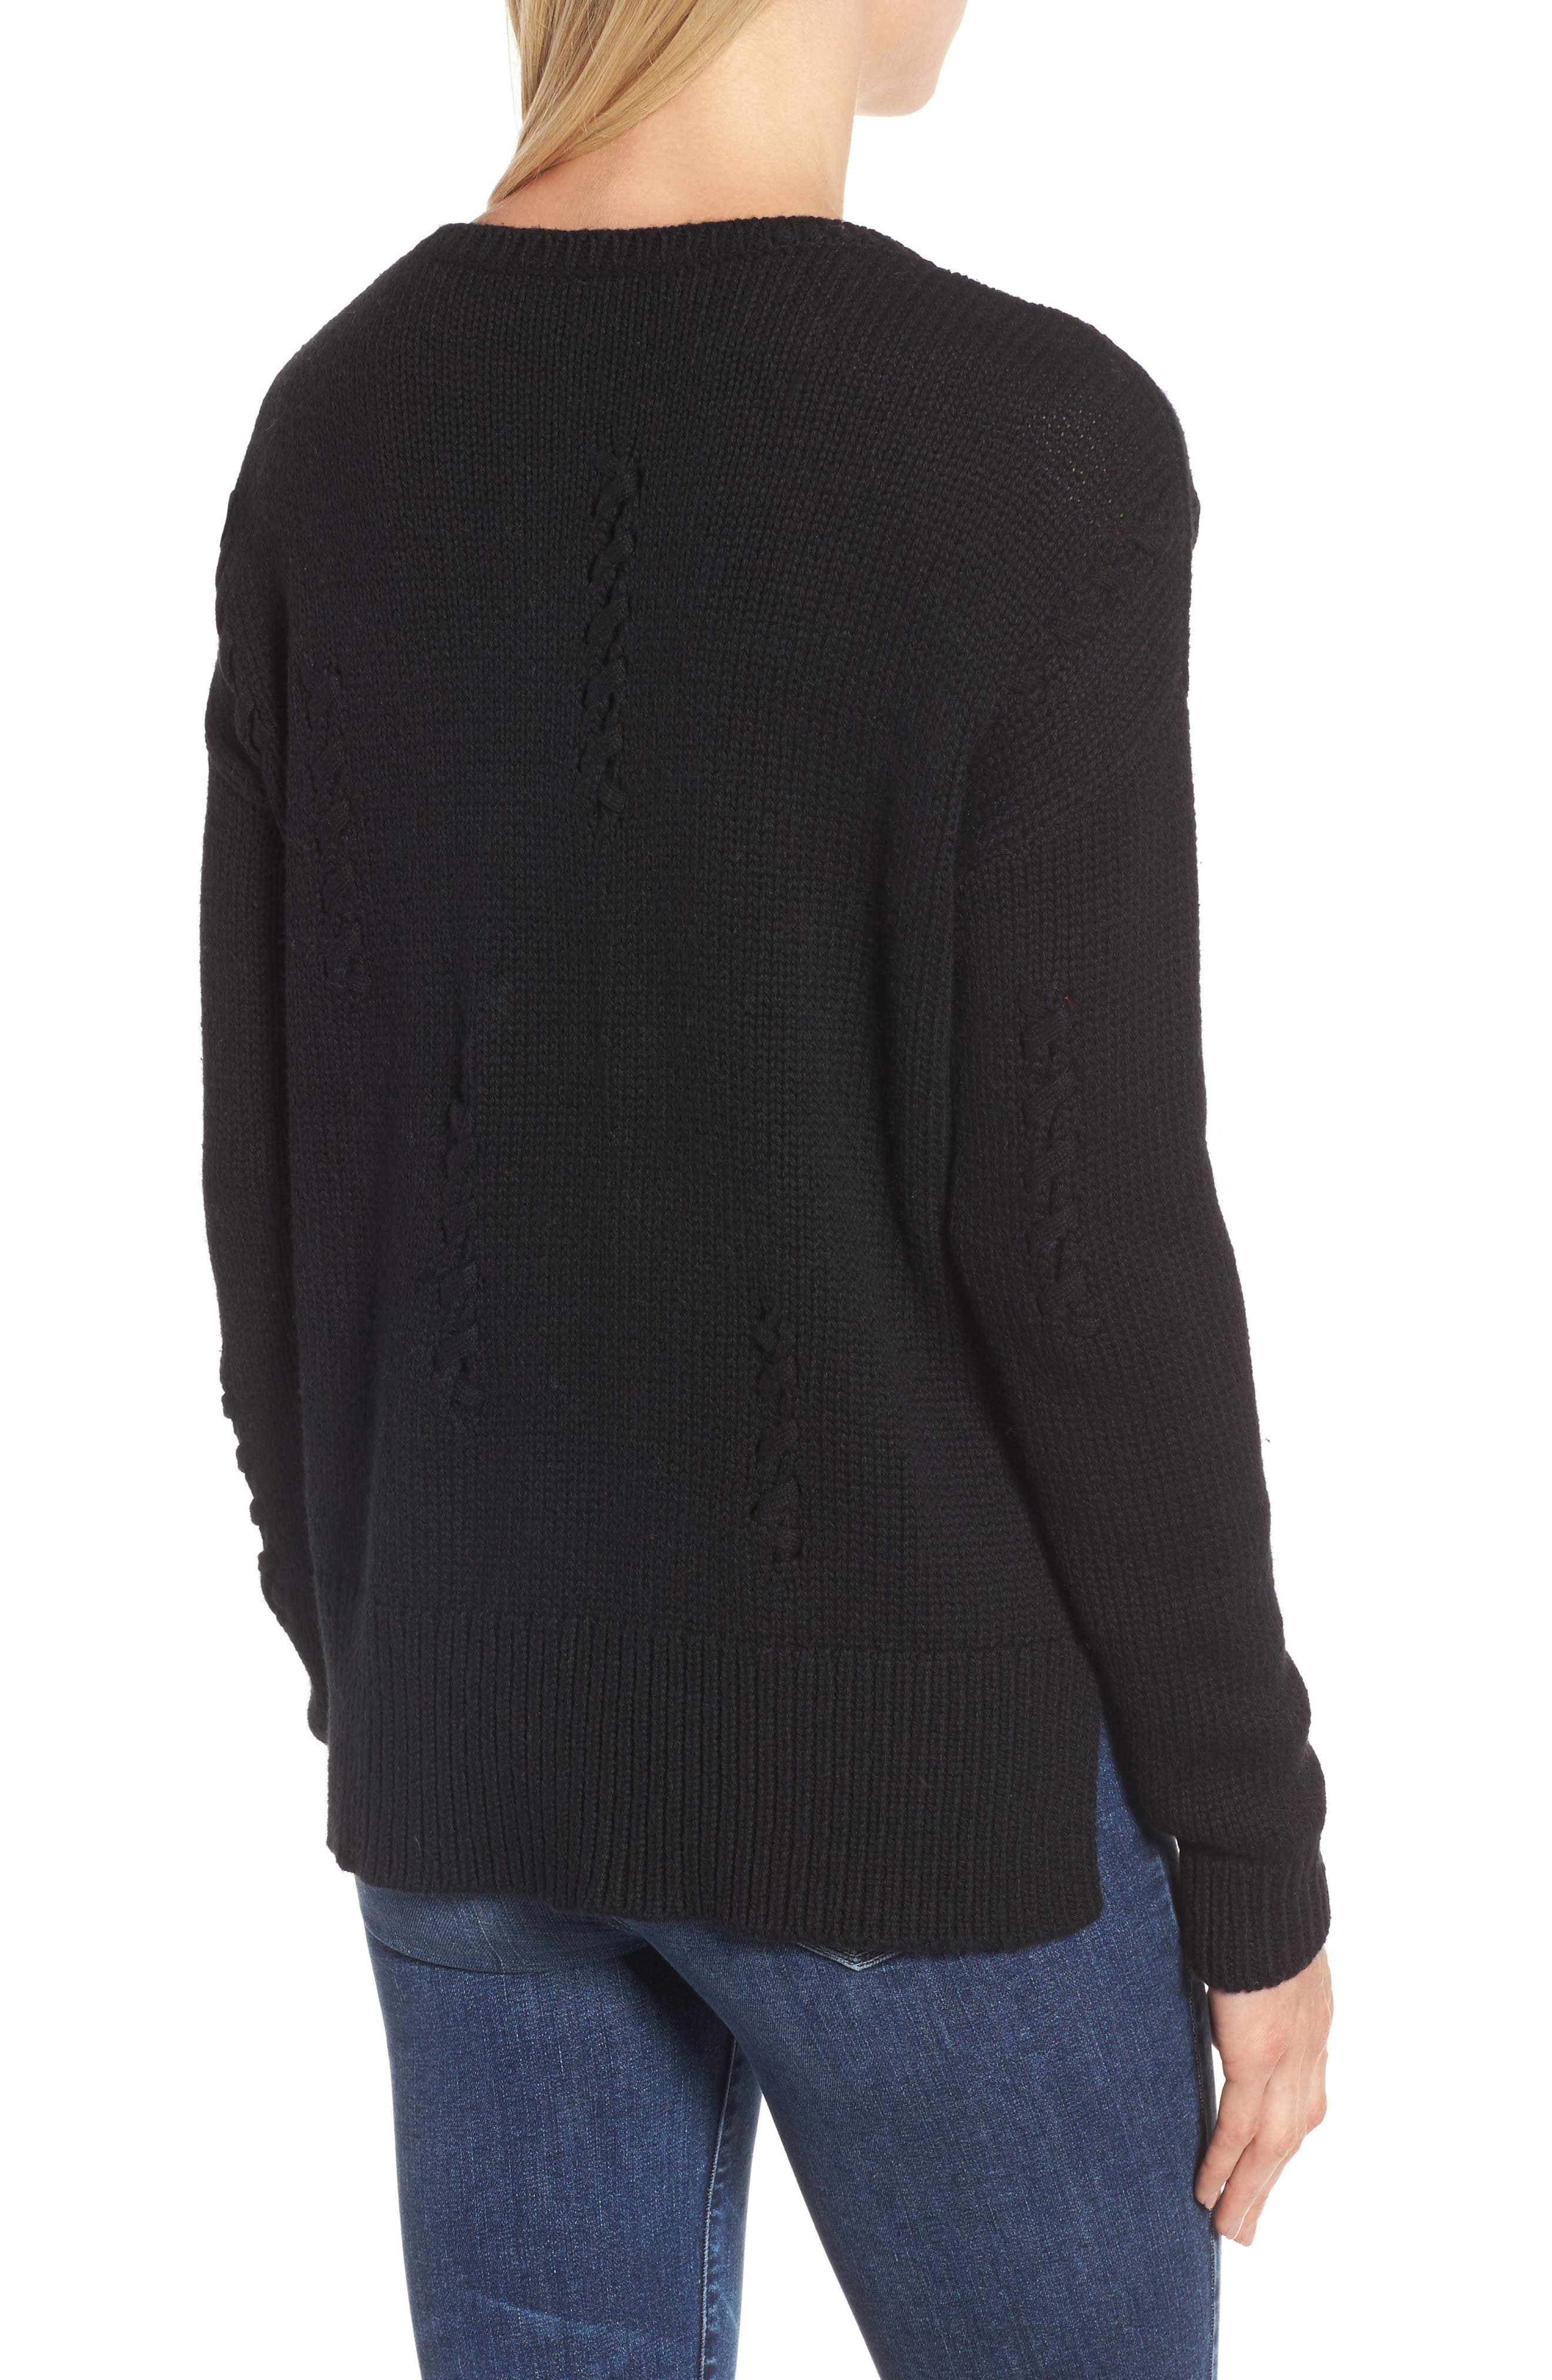 Whipstitch Detail Sweater,                             Alternate thumbnail 2, color,                             Black